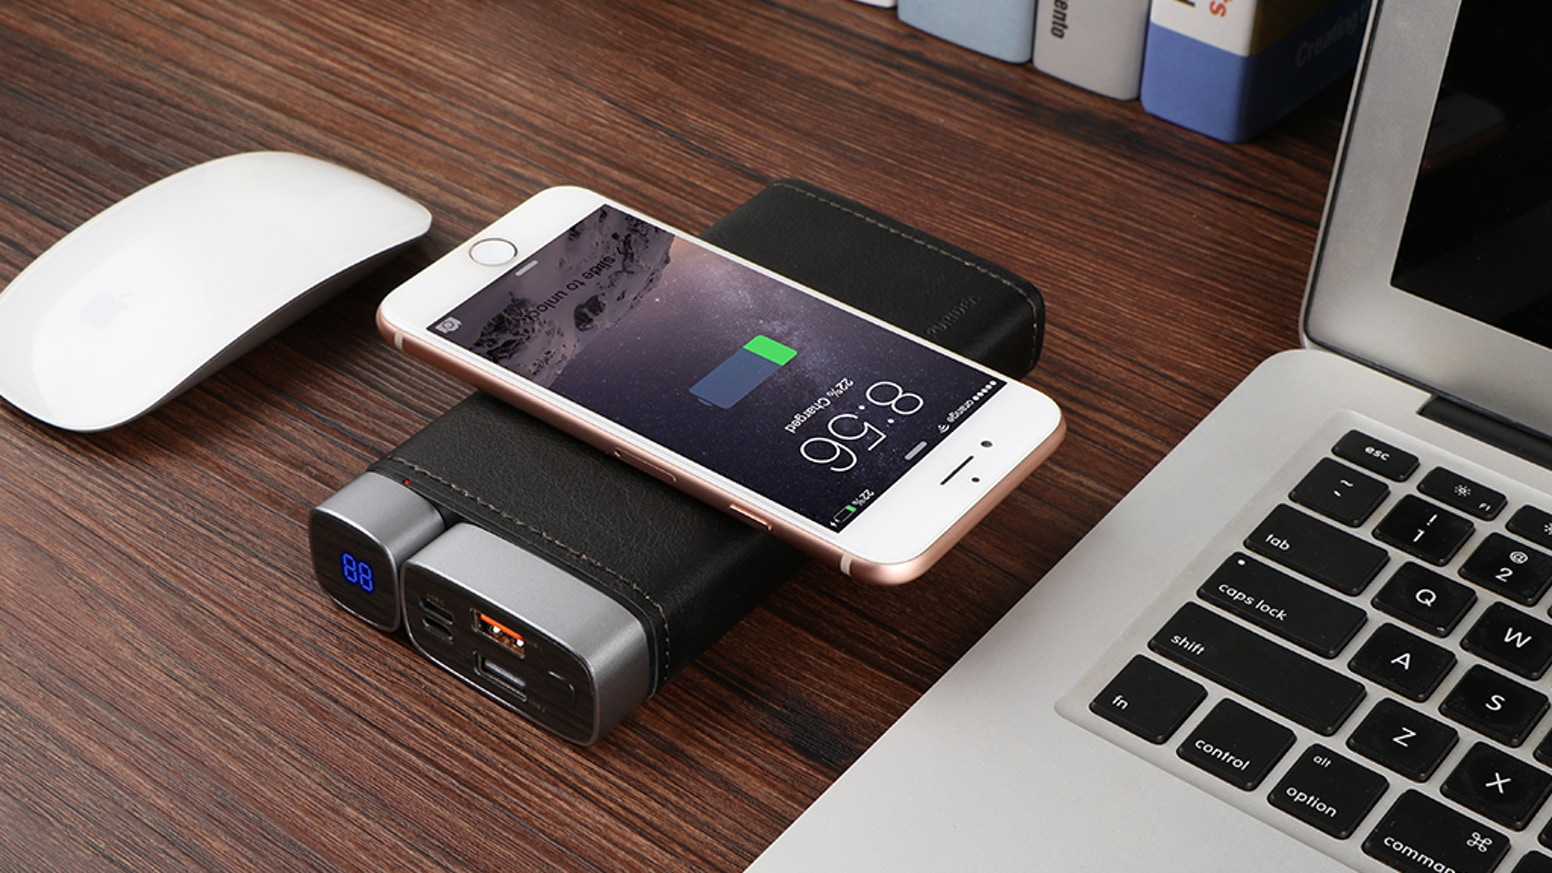 Portable 15000mAh type-C wireless power bank for business trip, not only for mobile devices, but also can works with MacBook very well